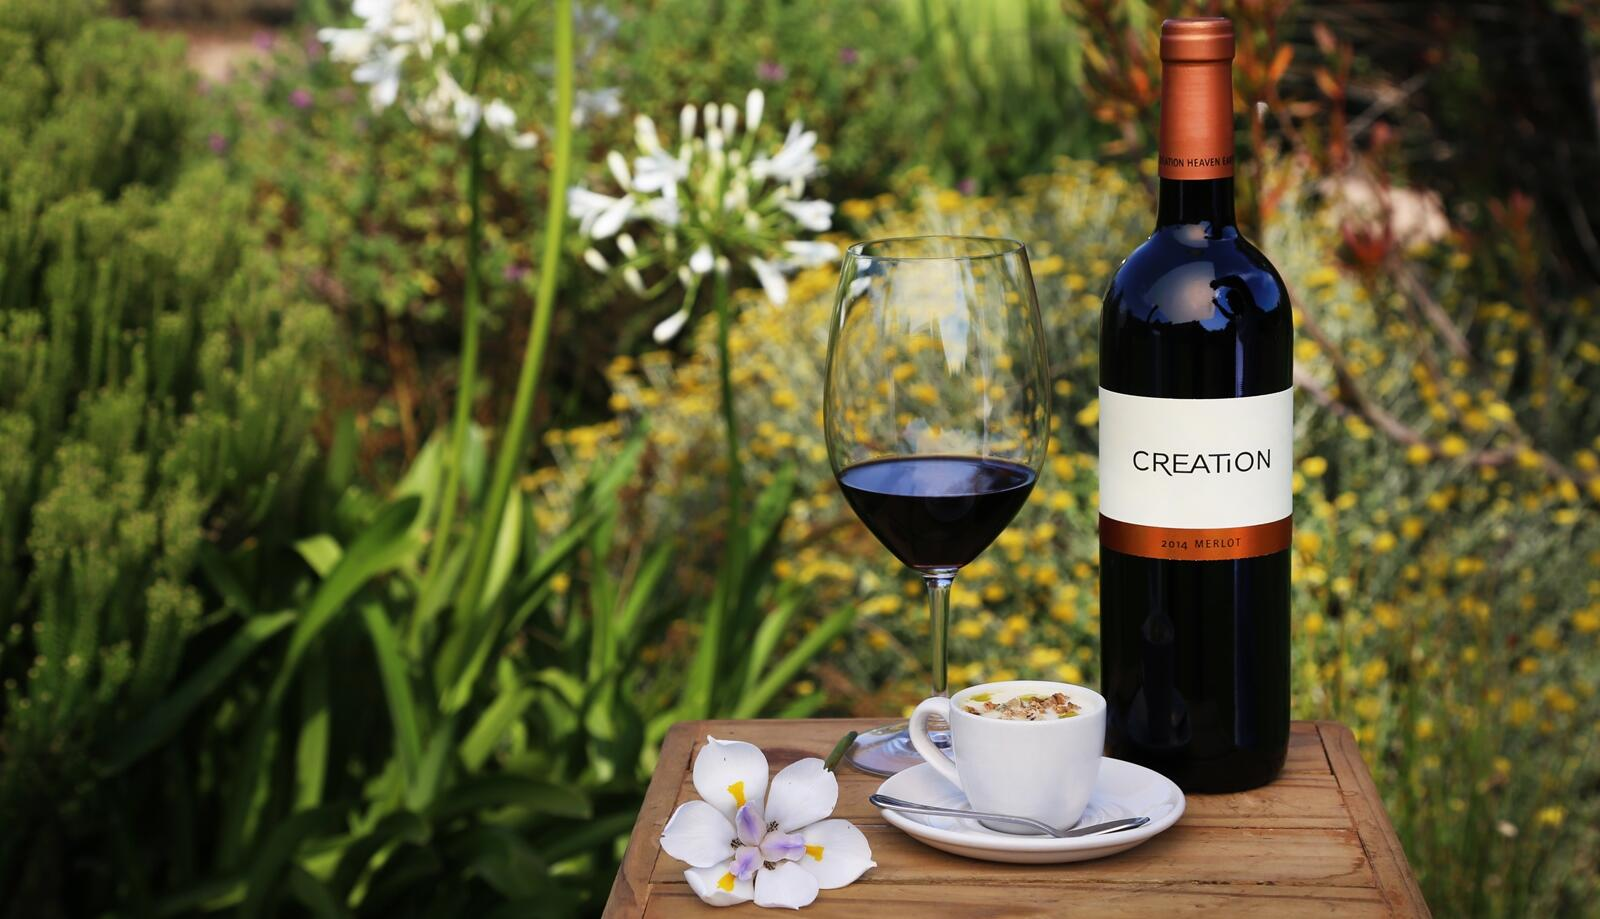 Bottle of Merlot with wild flowers in background